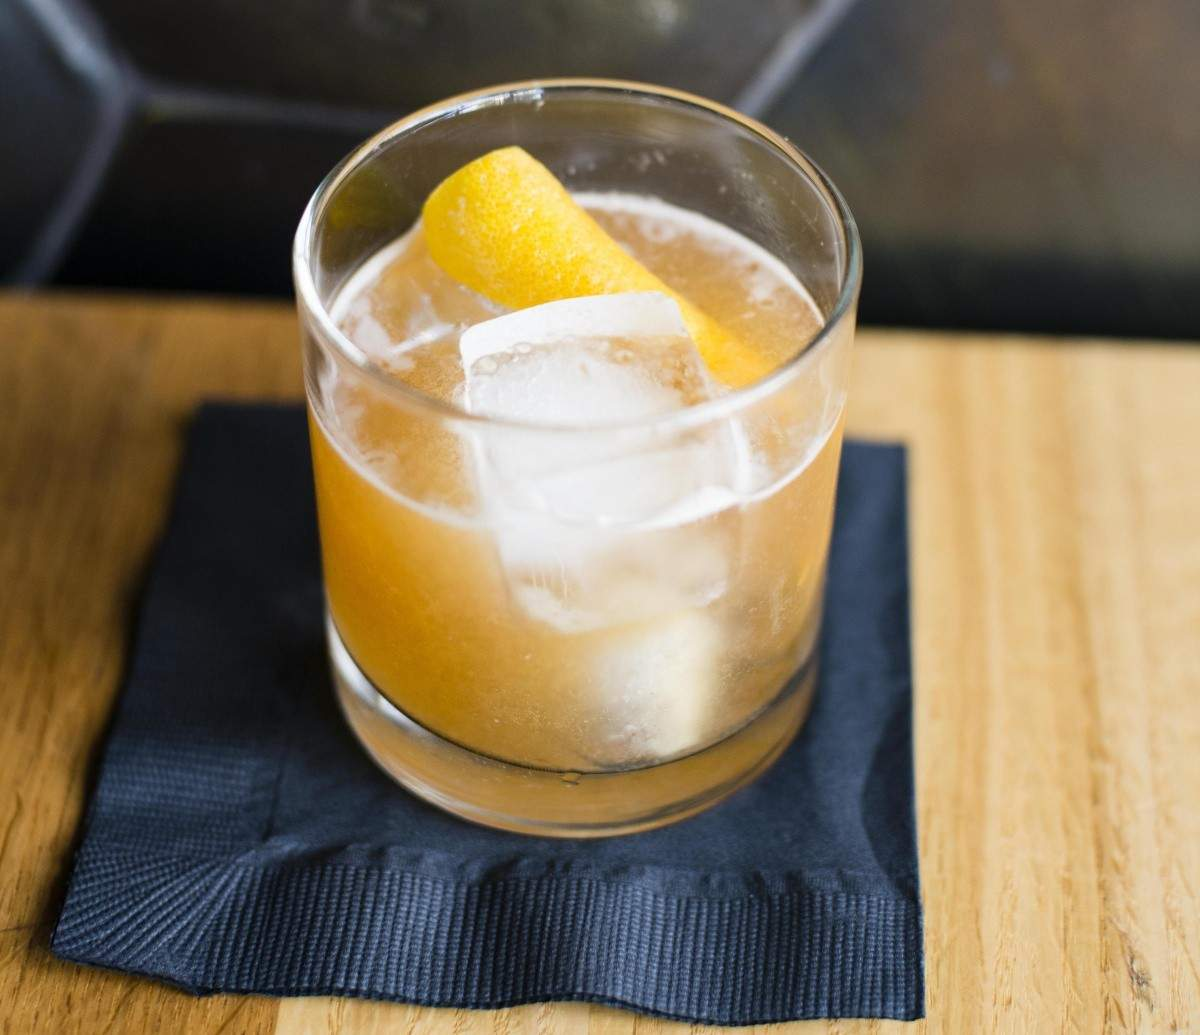 Spice Orange Smash cocktail with Hennessy cognac | Eat North